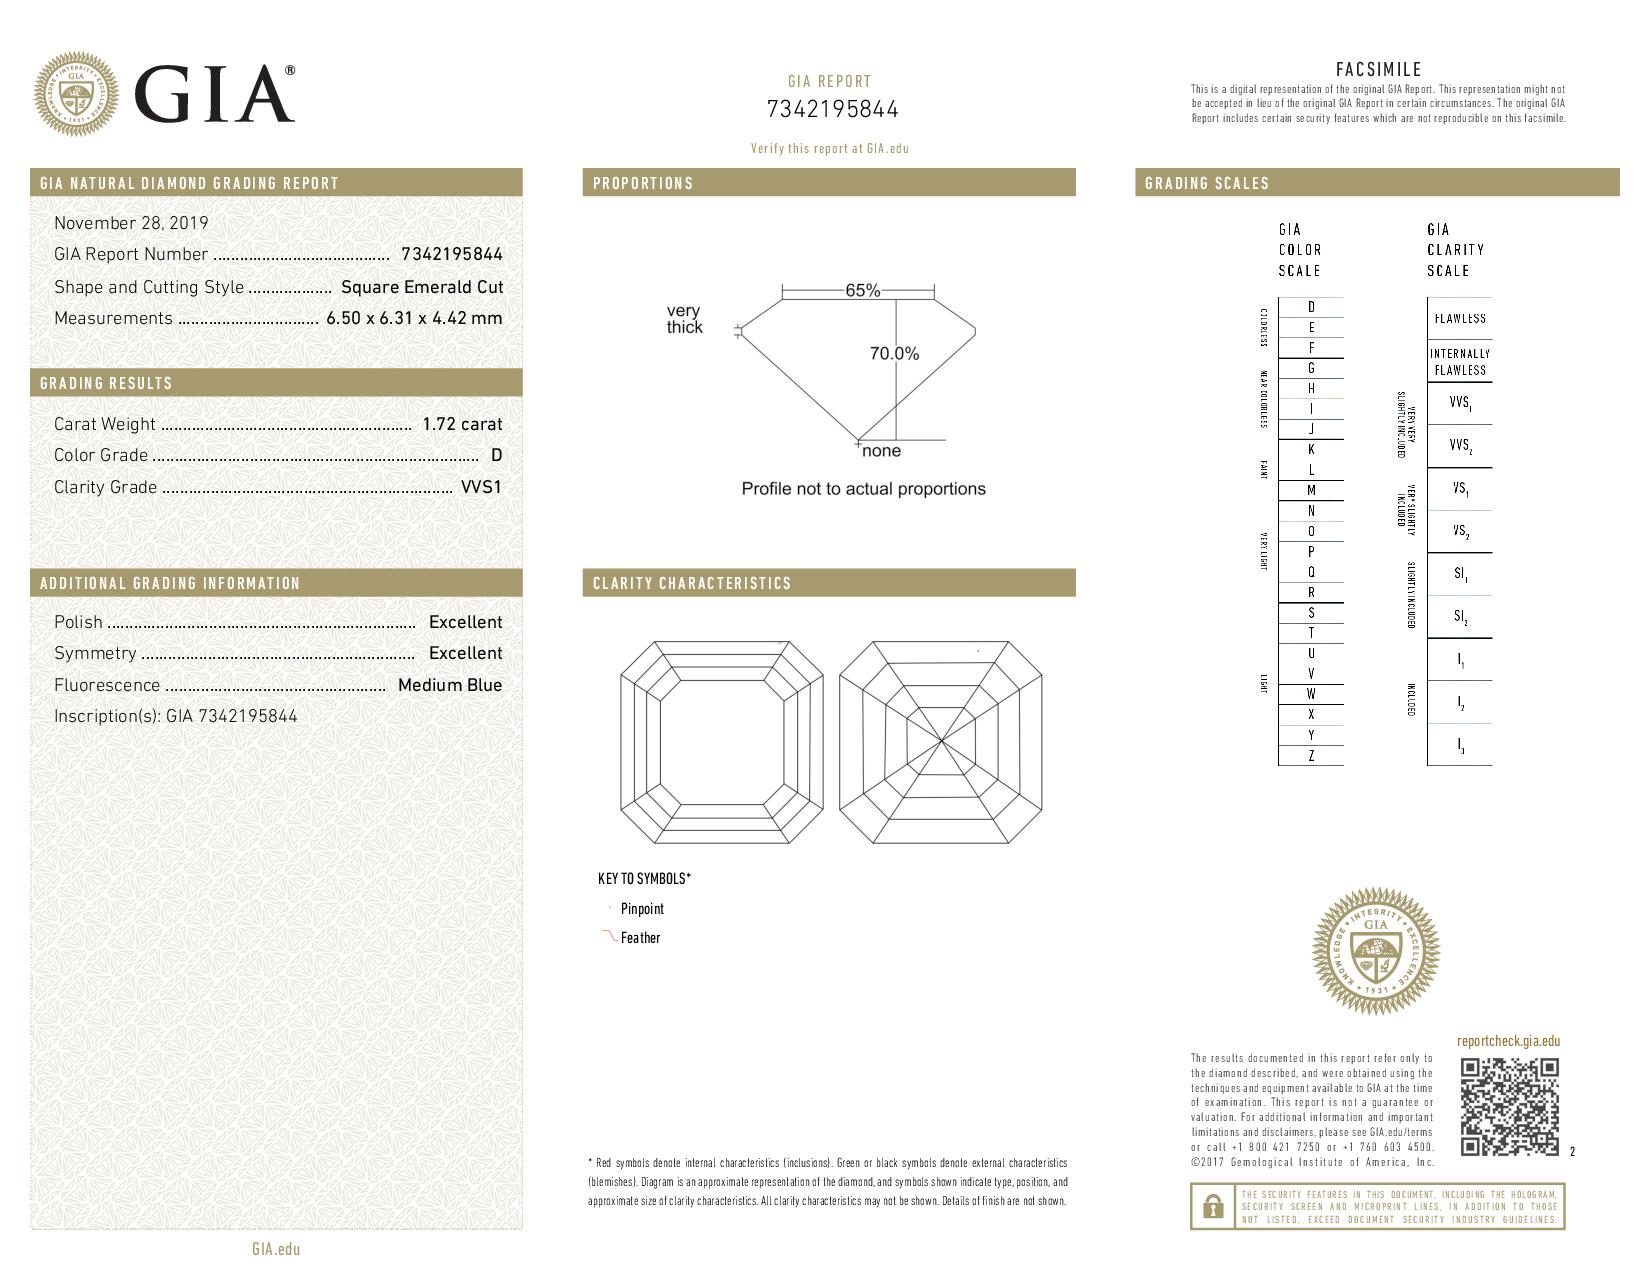 This is a 1.72 carat asscher shape, D color, VVS1 clarity natural diamond accompanied by a GIA grading report.